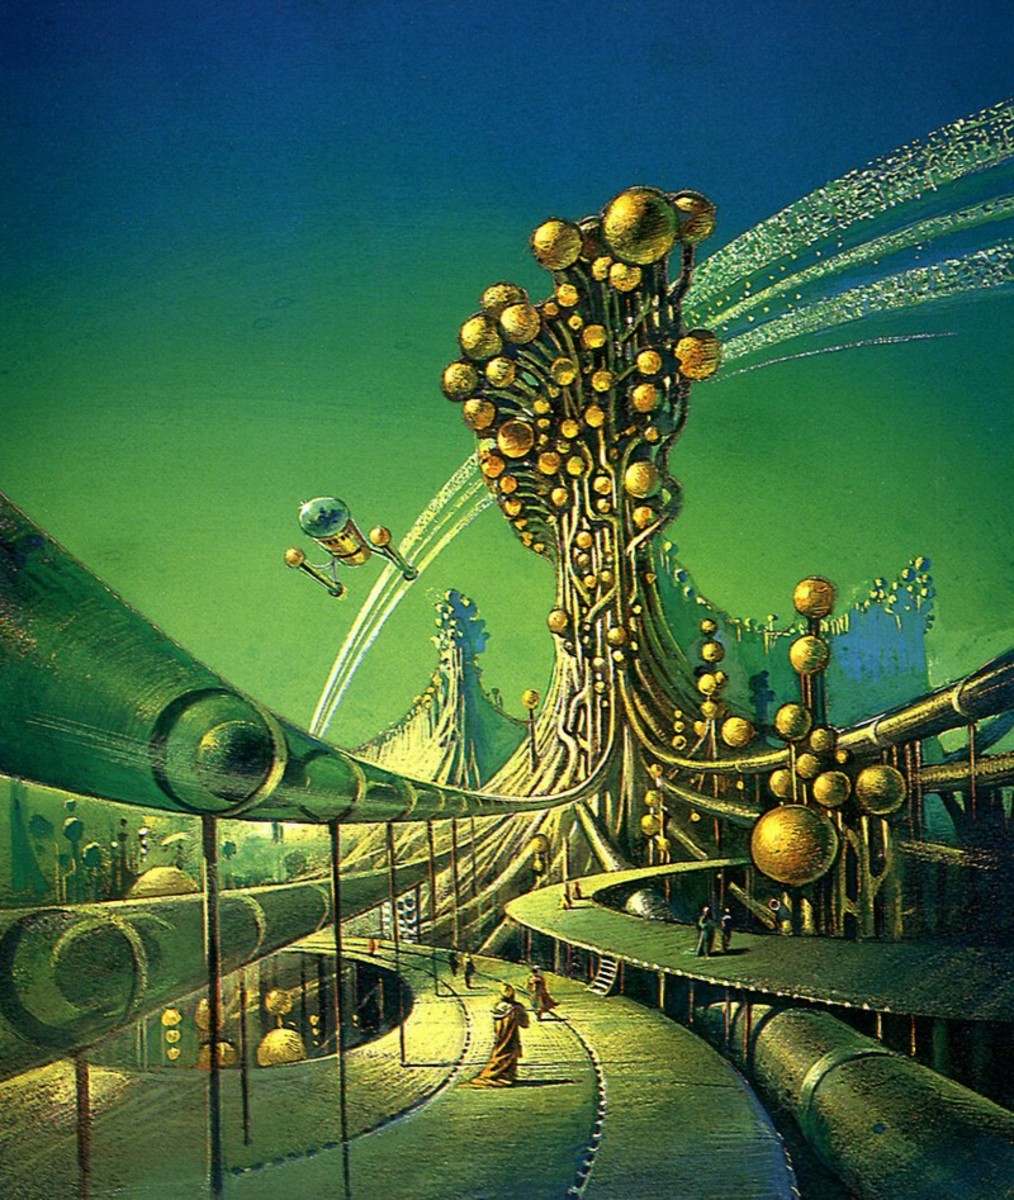 The Canopy of Time - art by Bruce Pennington